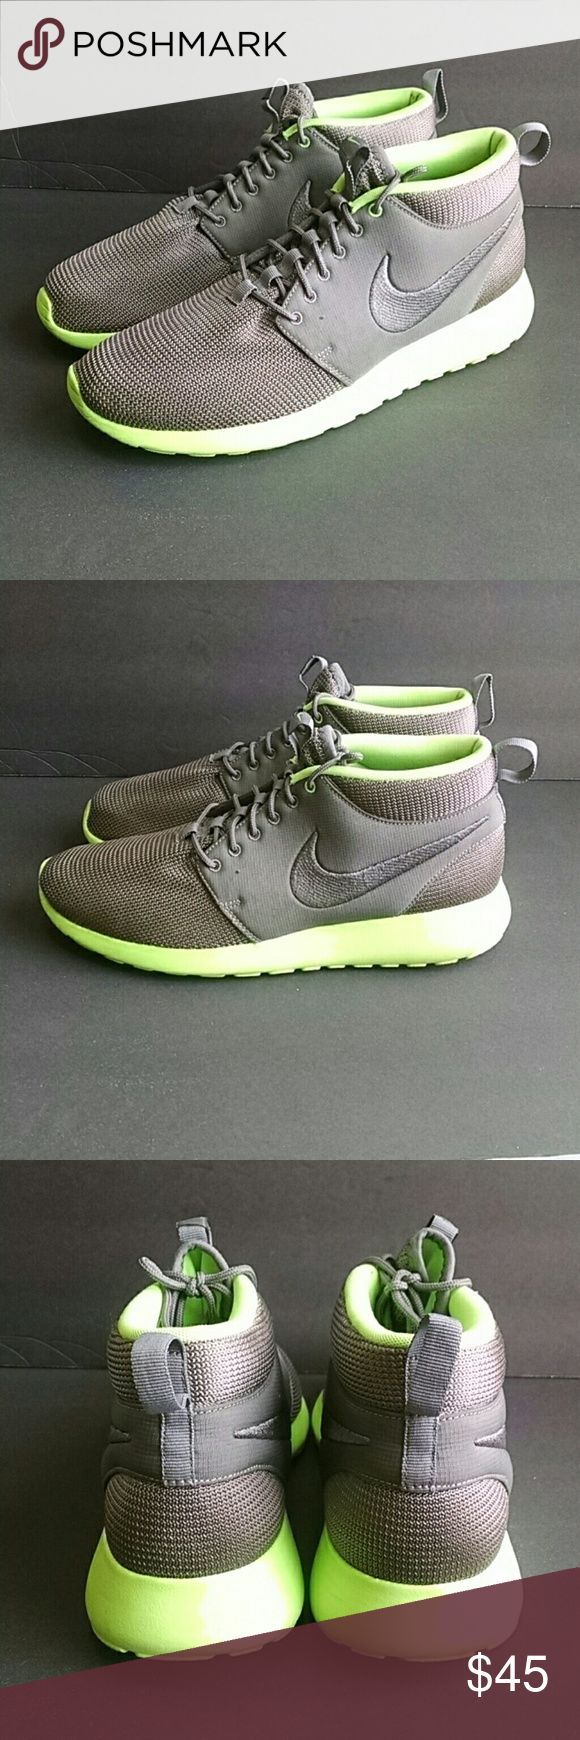 Nike Mid Top Men's Size 12 Nike mid top men's size 12 . Uppers in excellent condition and soles show no noticable wear. Nike Shoes Athletic Shoes